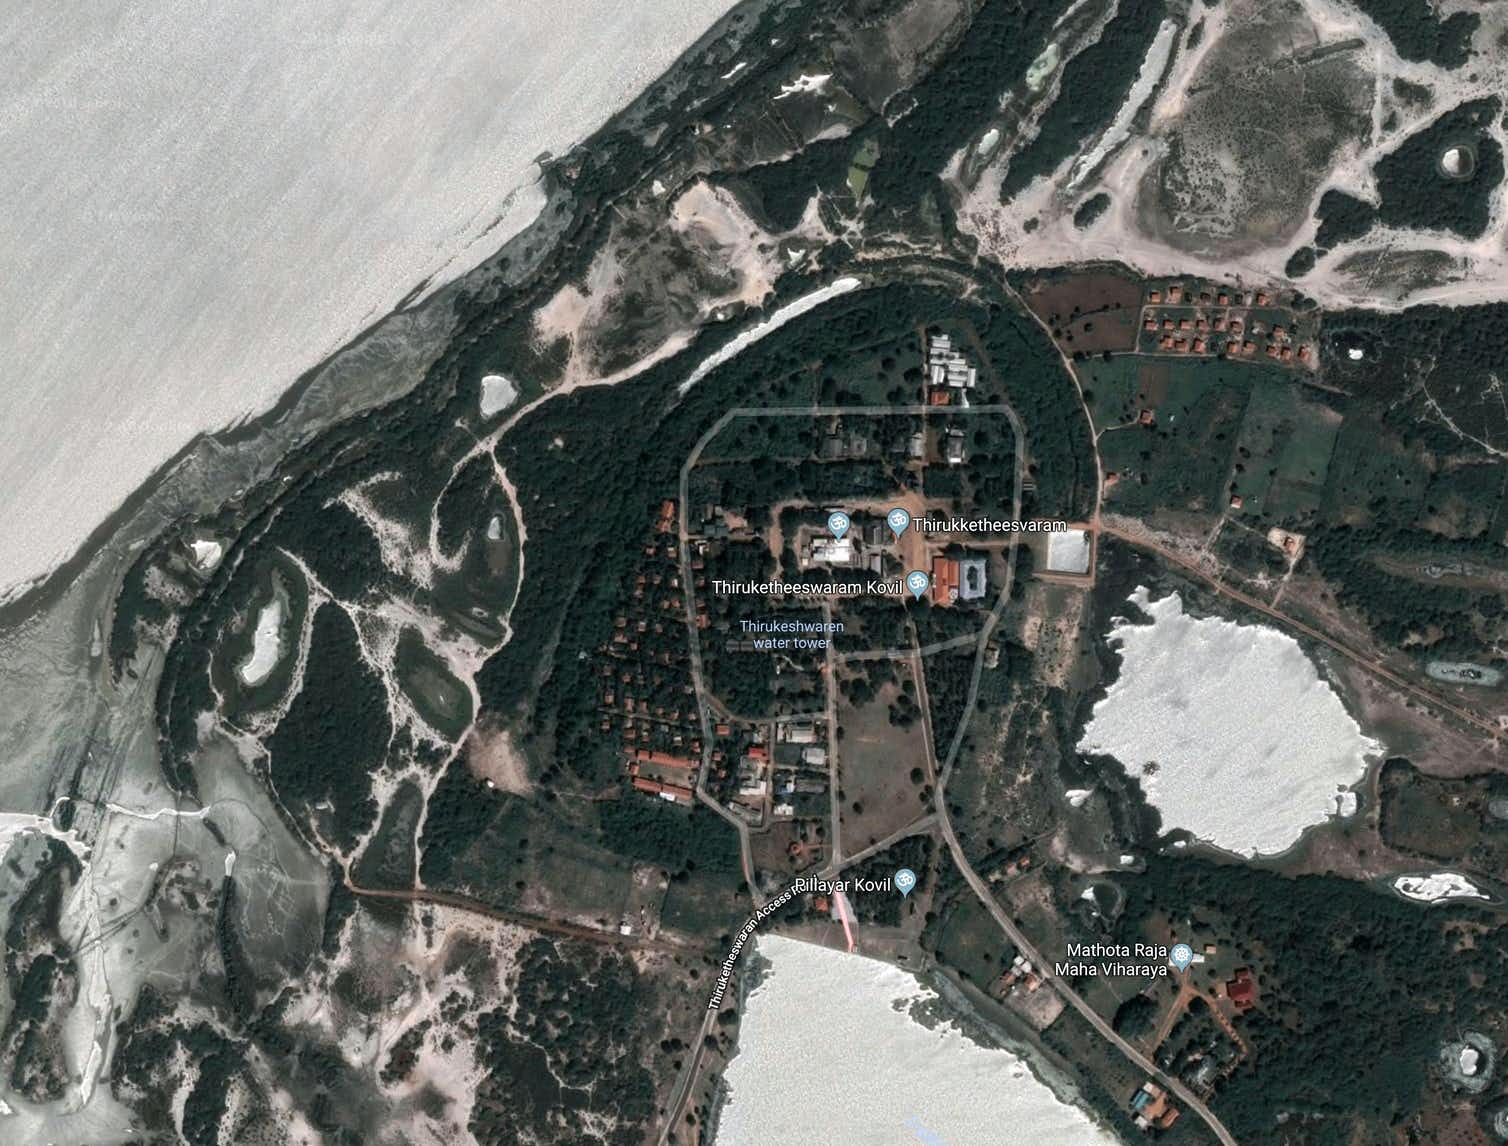 Mantai as seen from the air today. The ancient circle of ditches built to defend the site can be seen in dark green. The main settlement was inside these defences. Credit: Google Maps